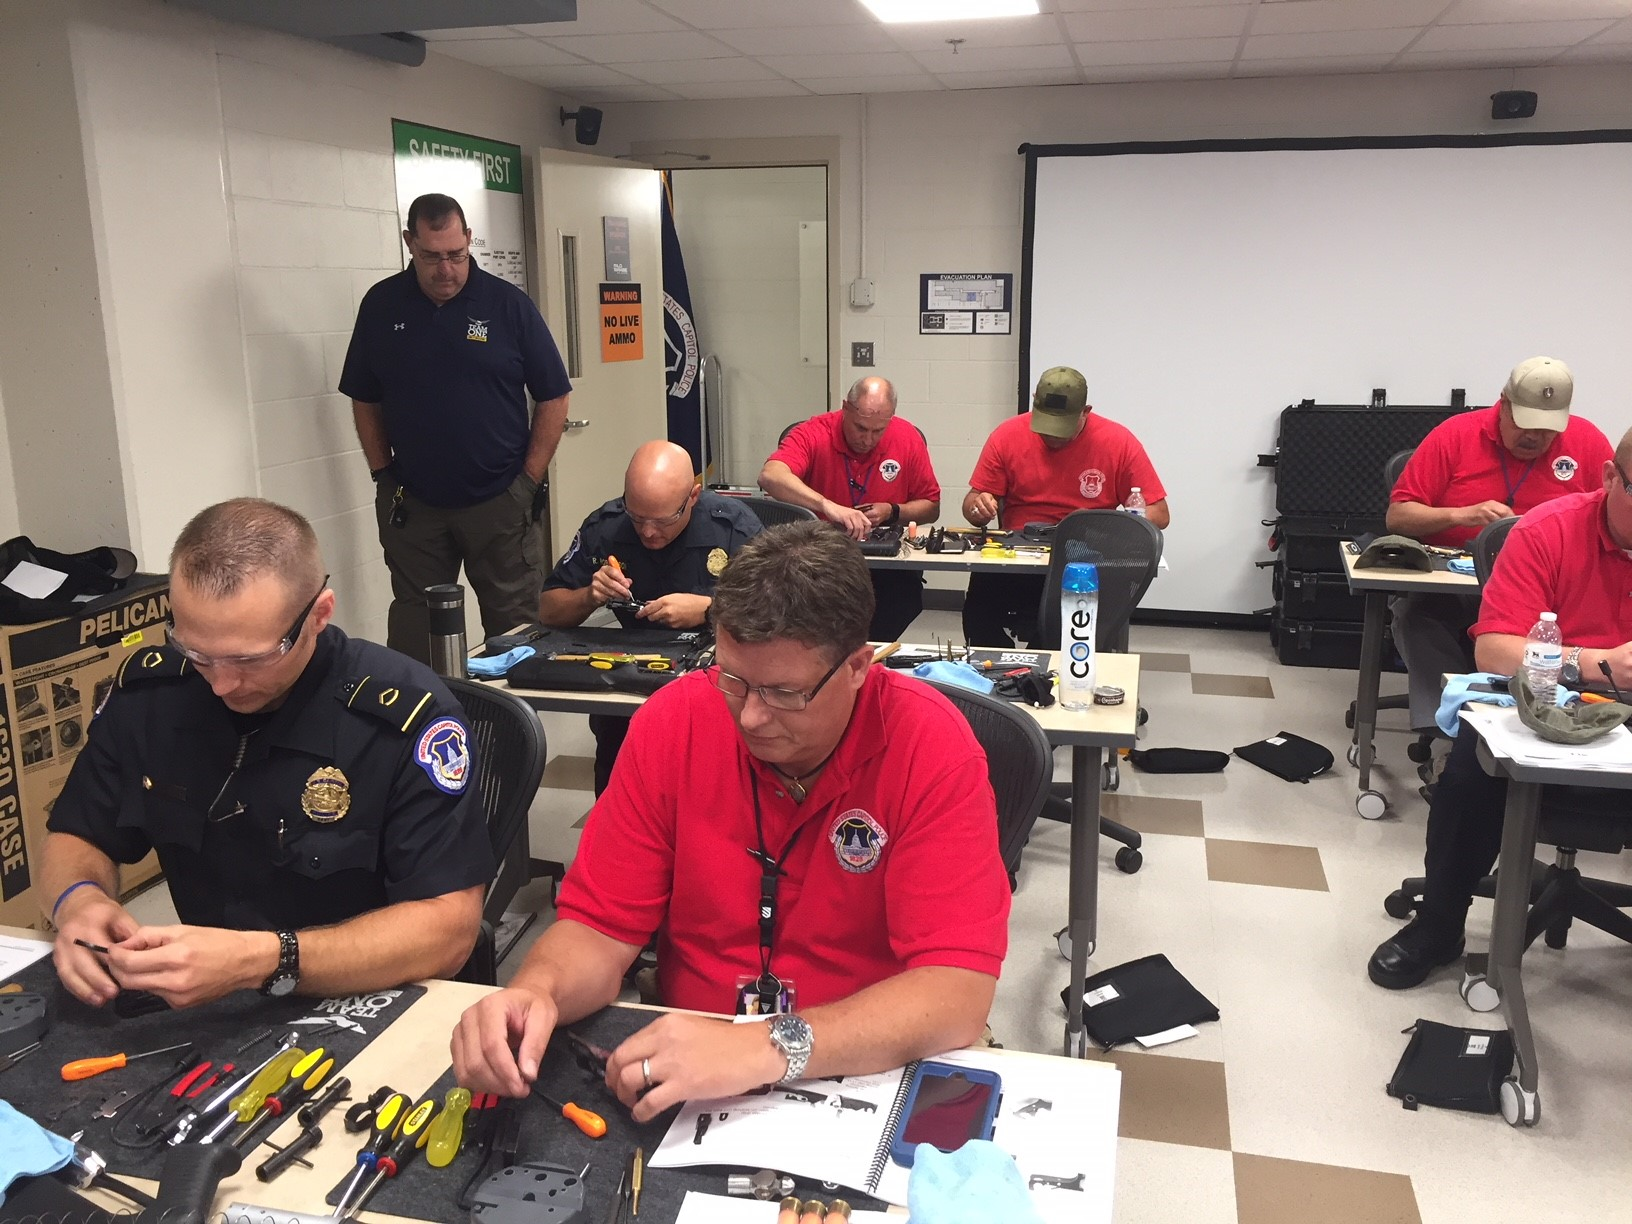 Team One Network conducts Ruger and Benelli Armorer Training for the US Capital Police